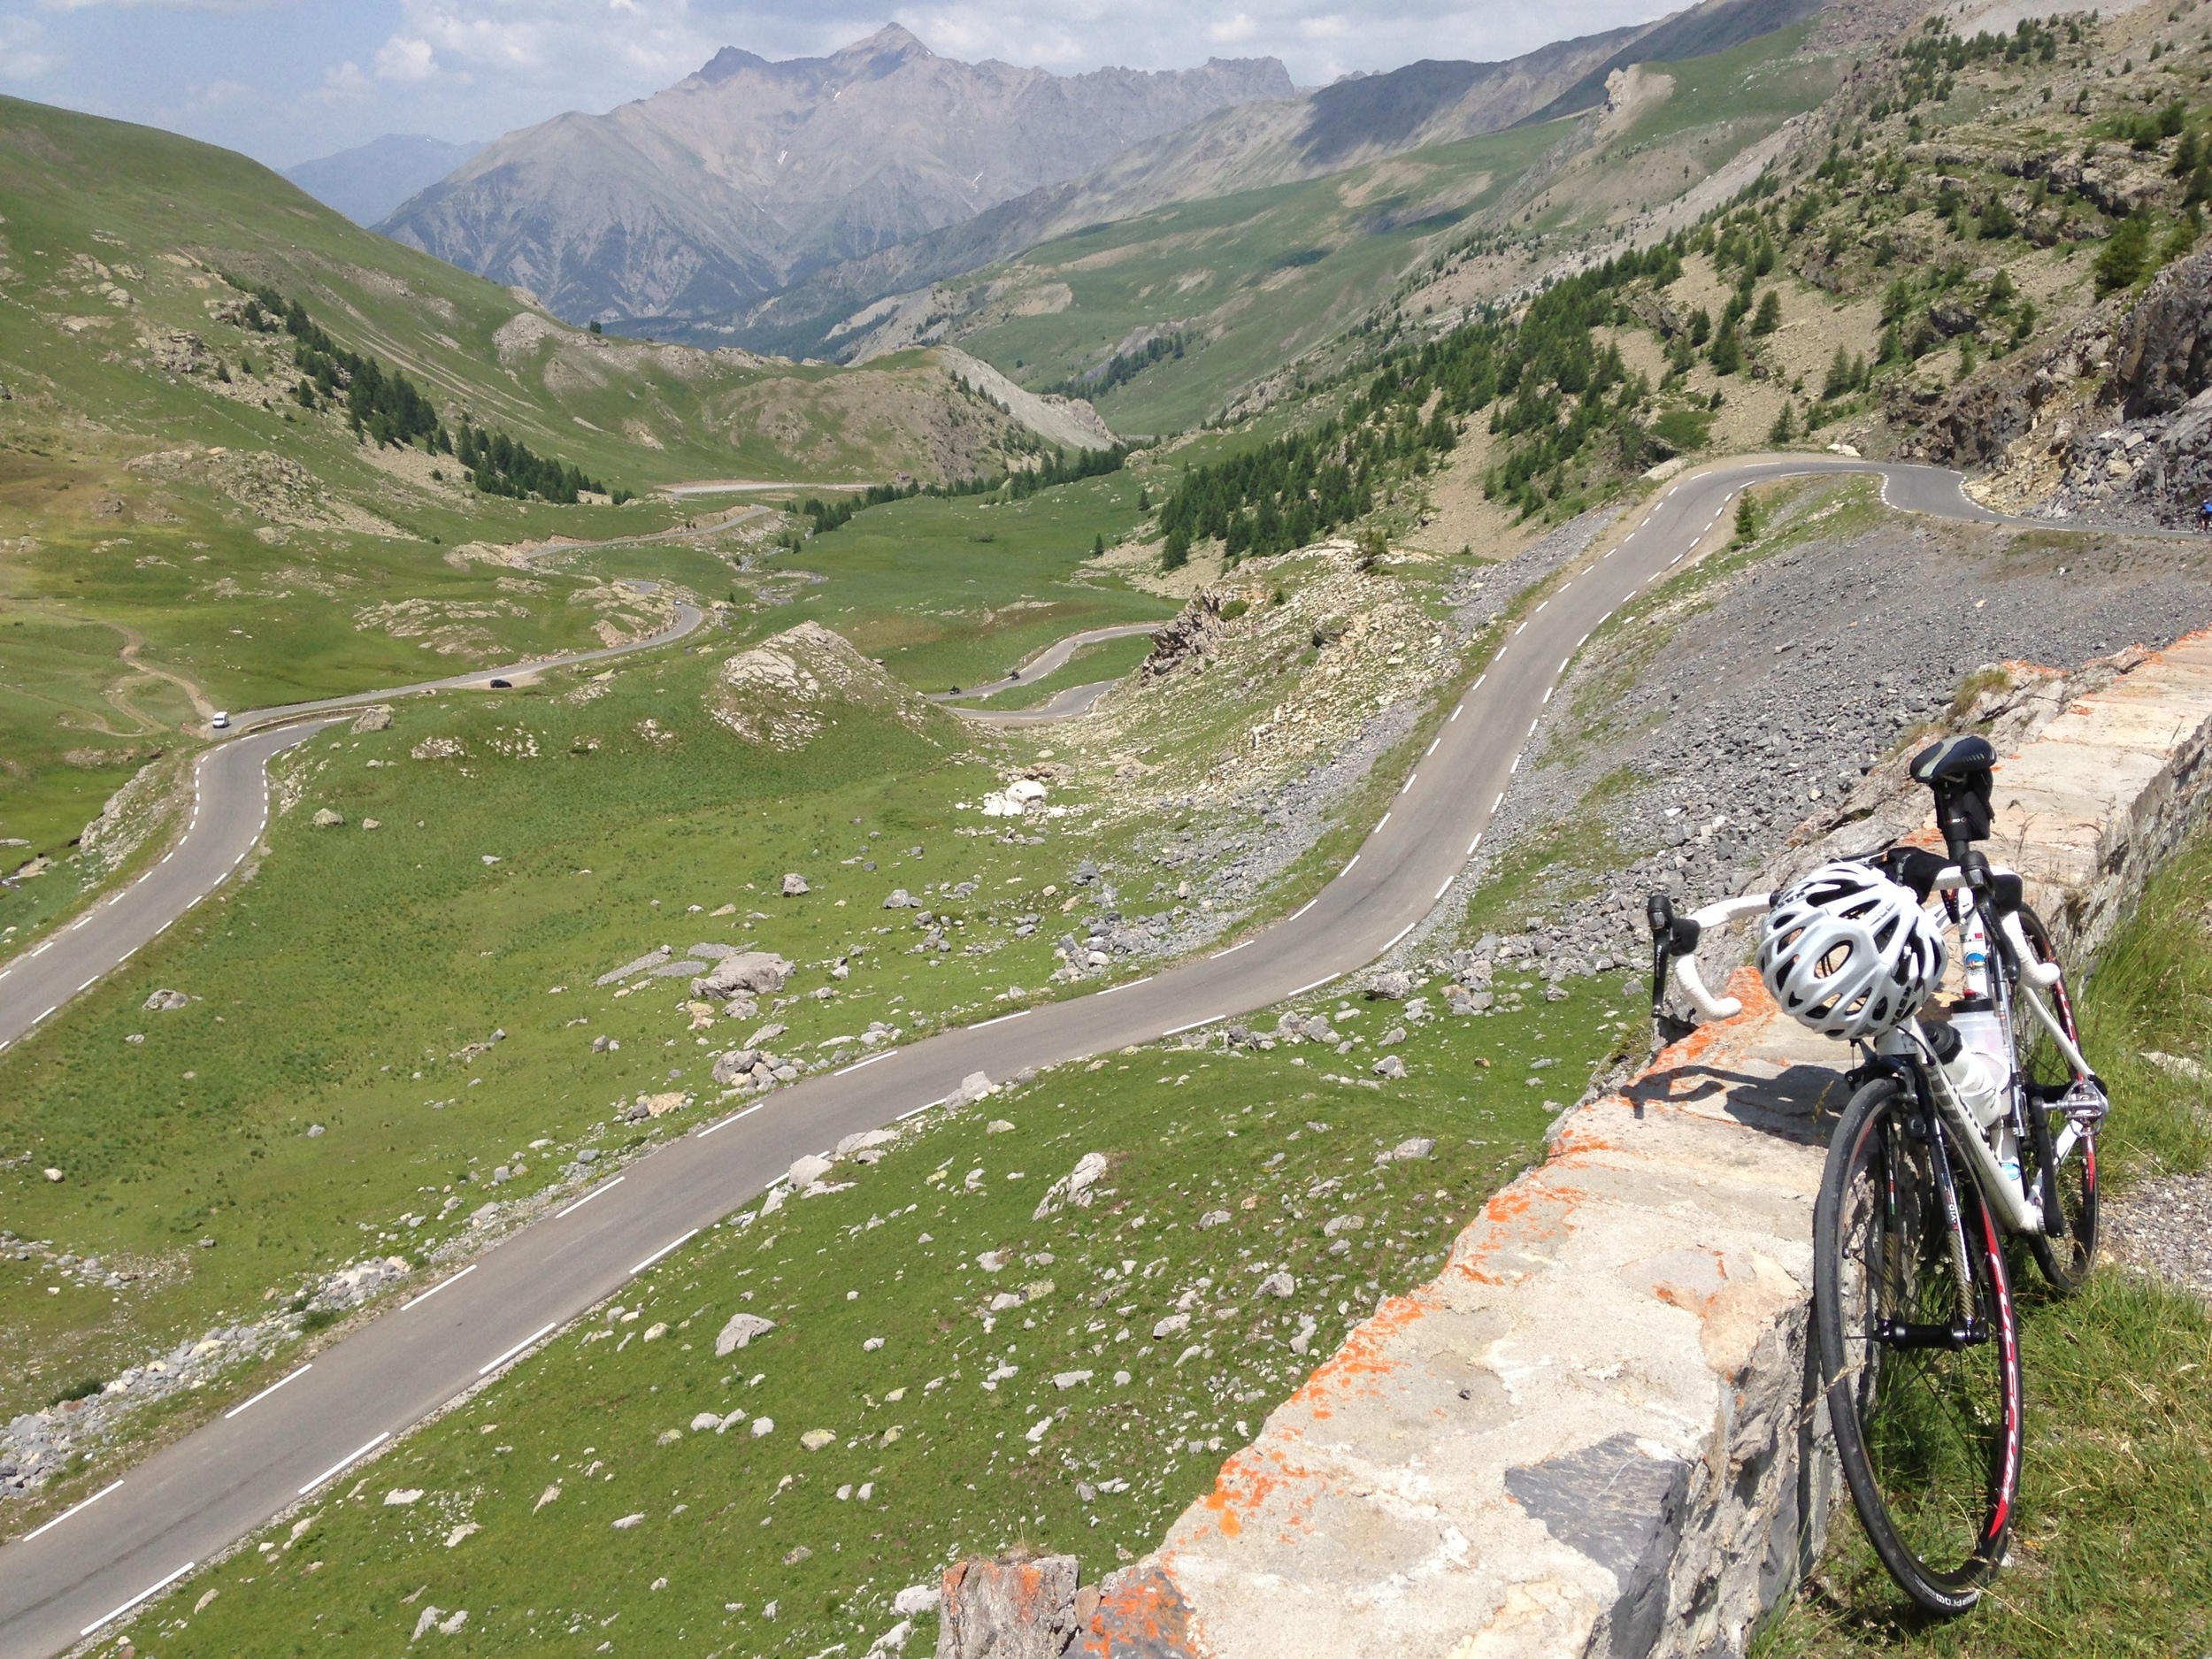 Col de la Bonette - the highest paved road in the Alps